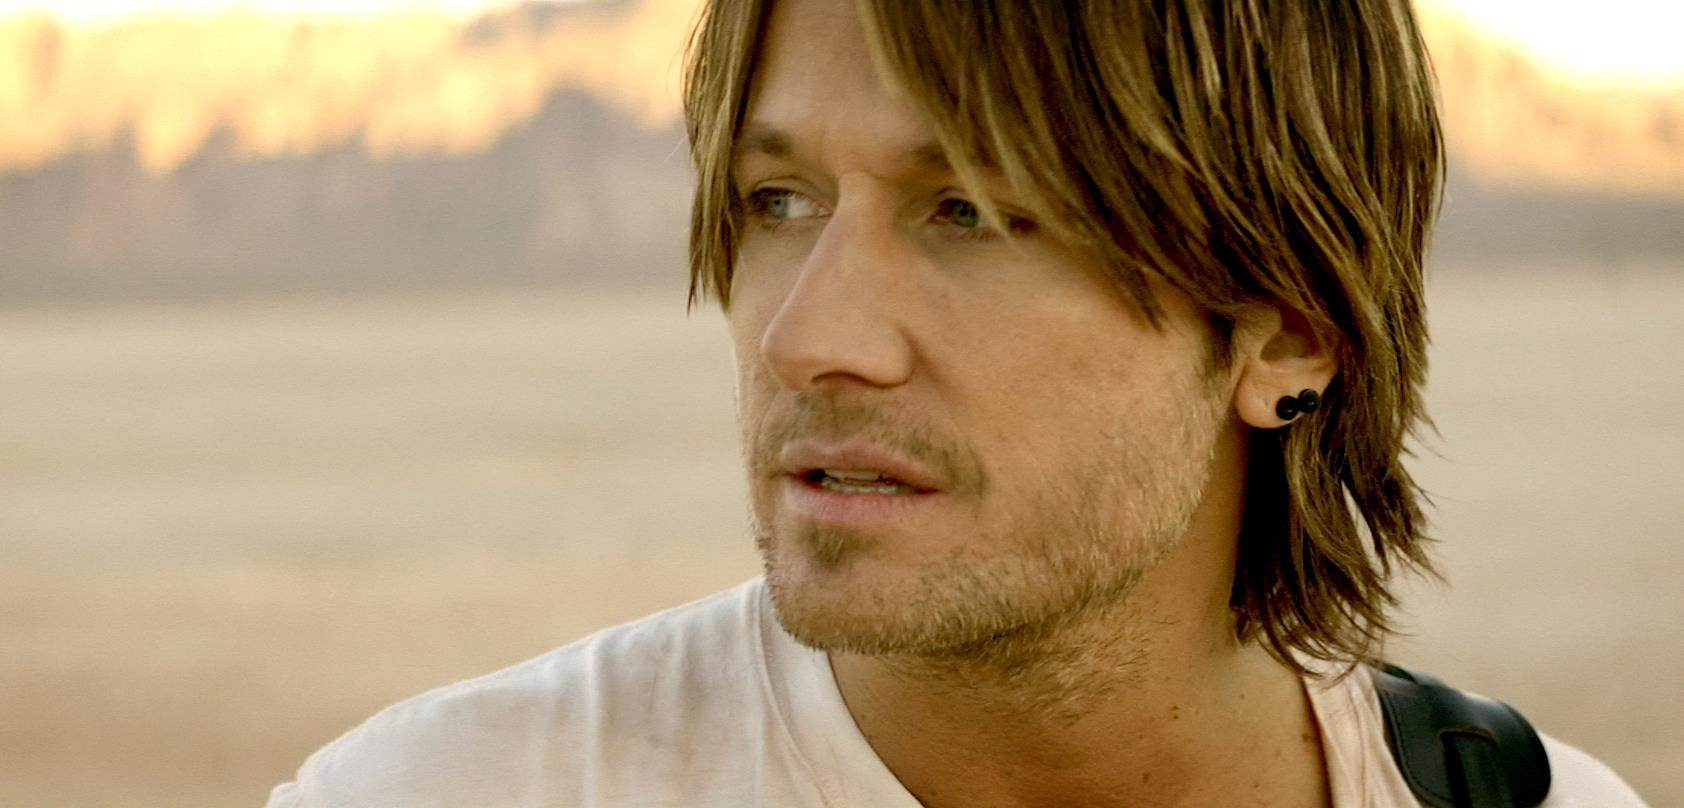 Watch Keith Urban Get Some New Body Art [Video]